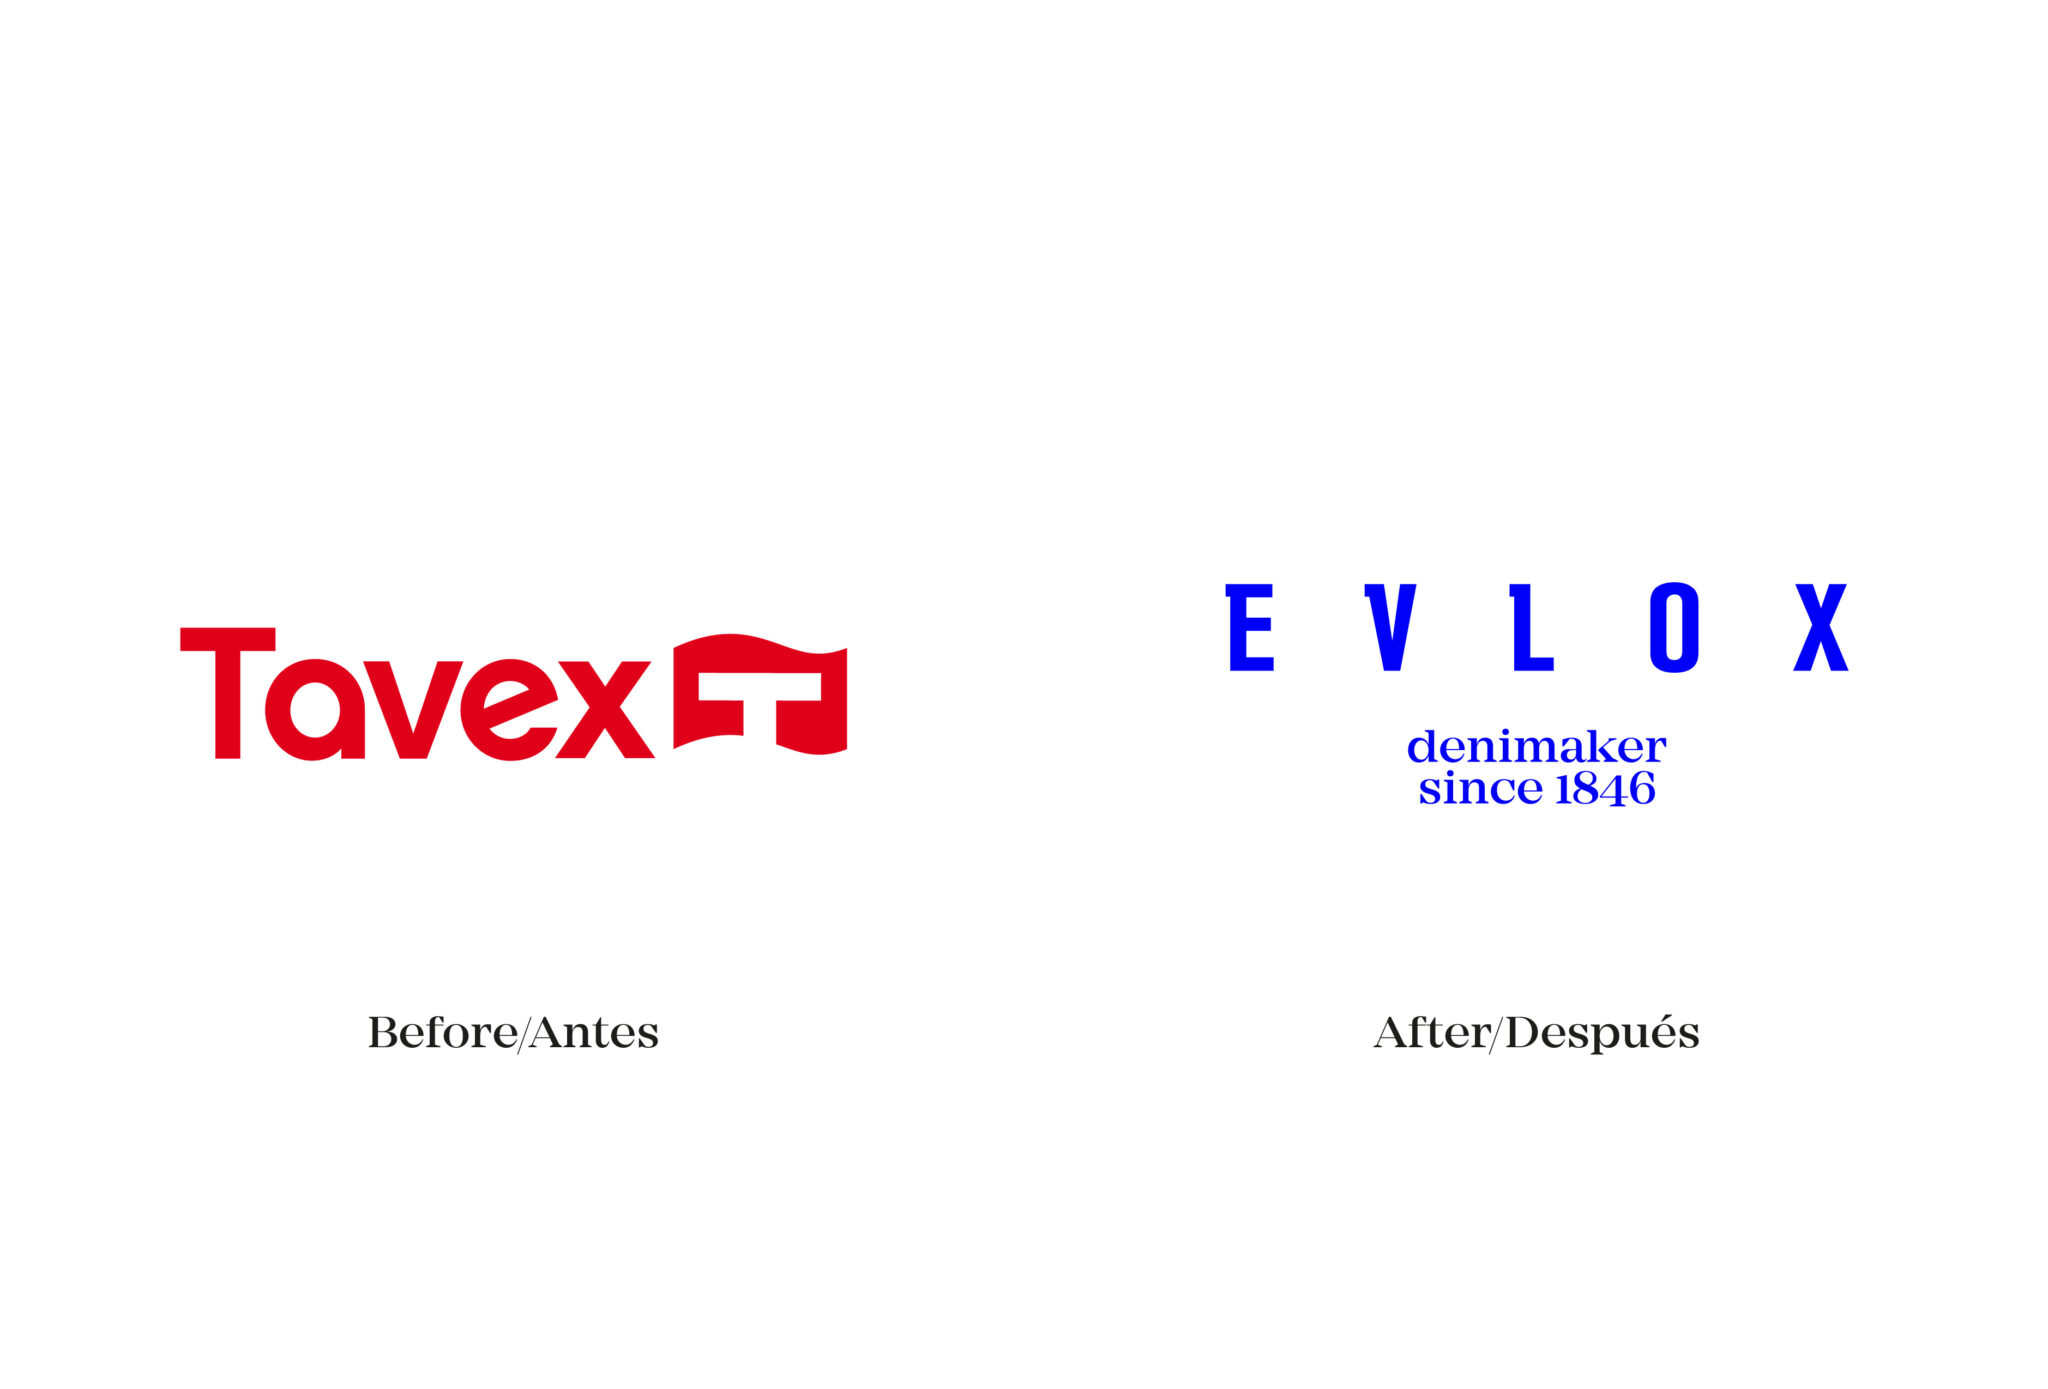 Tavex is now evlox